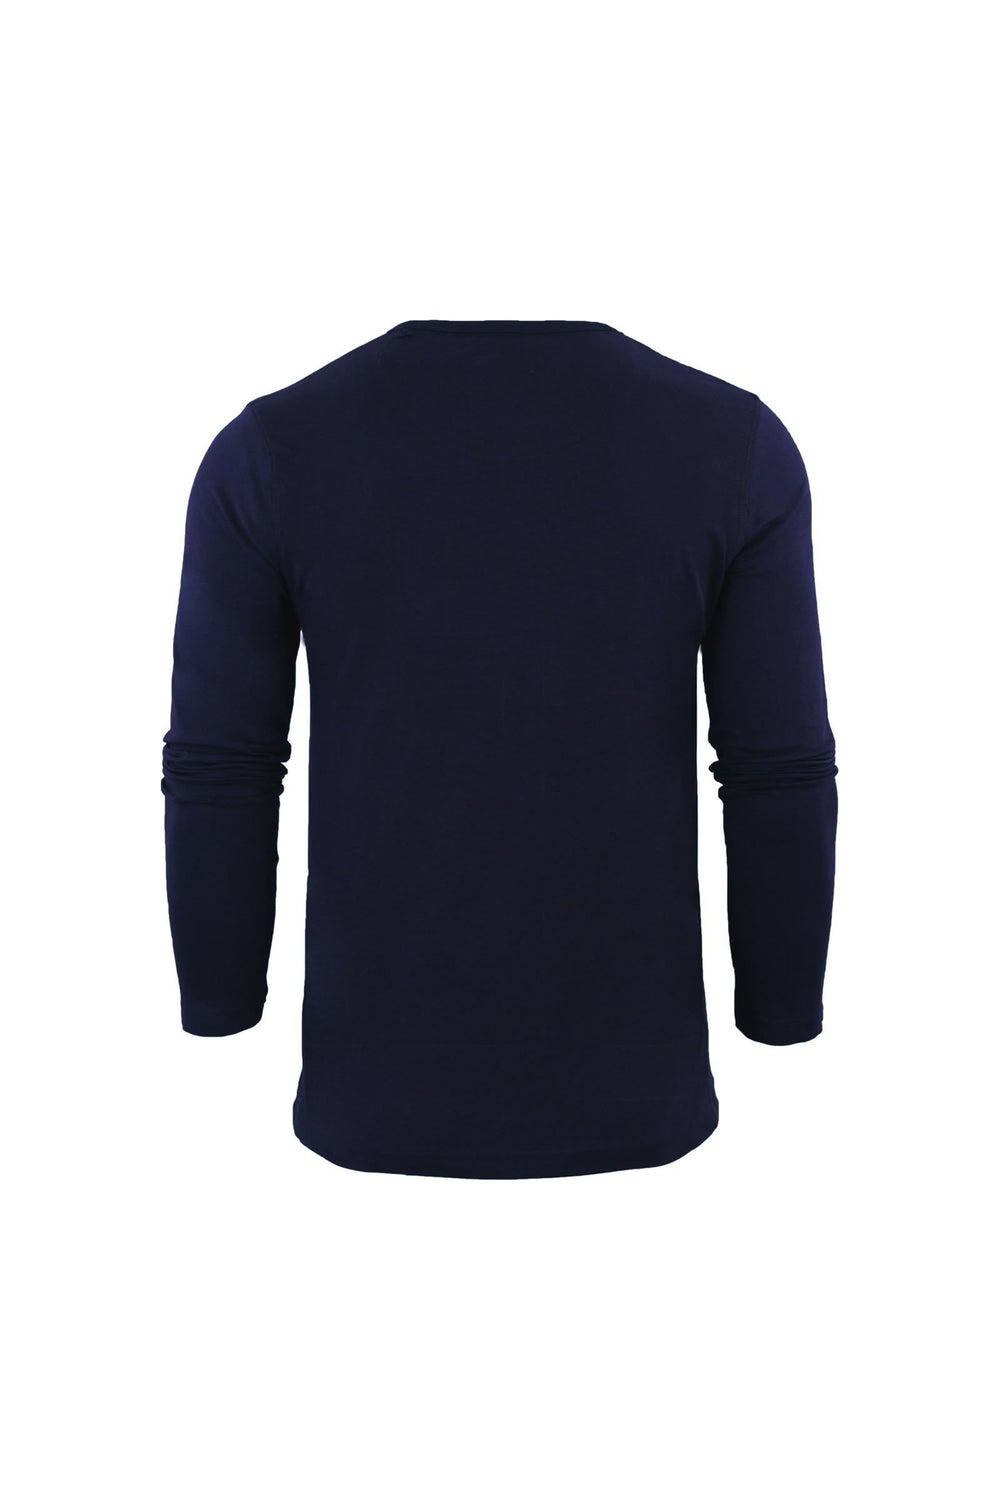 T-Shirts - Long Sleeve T-Shirt Navy